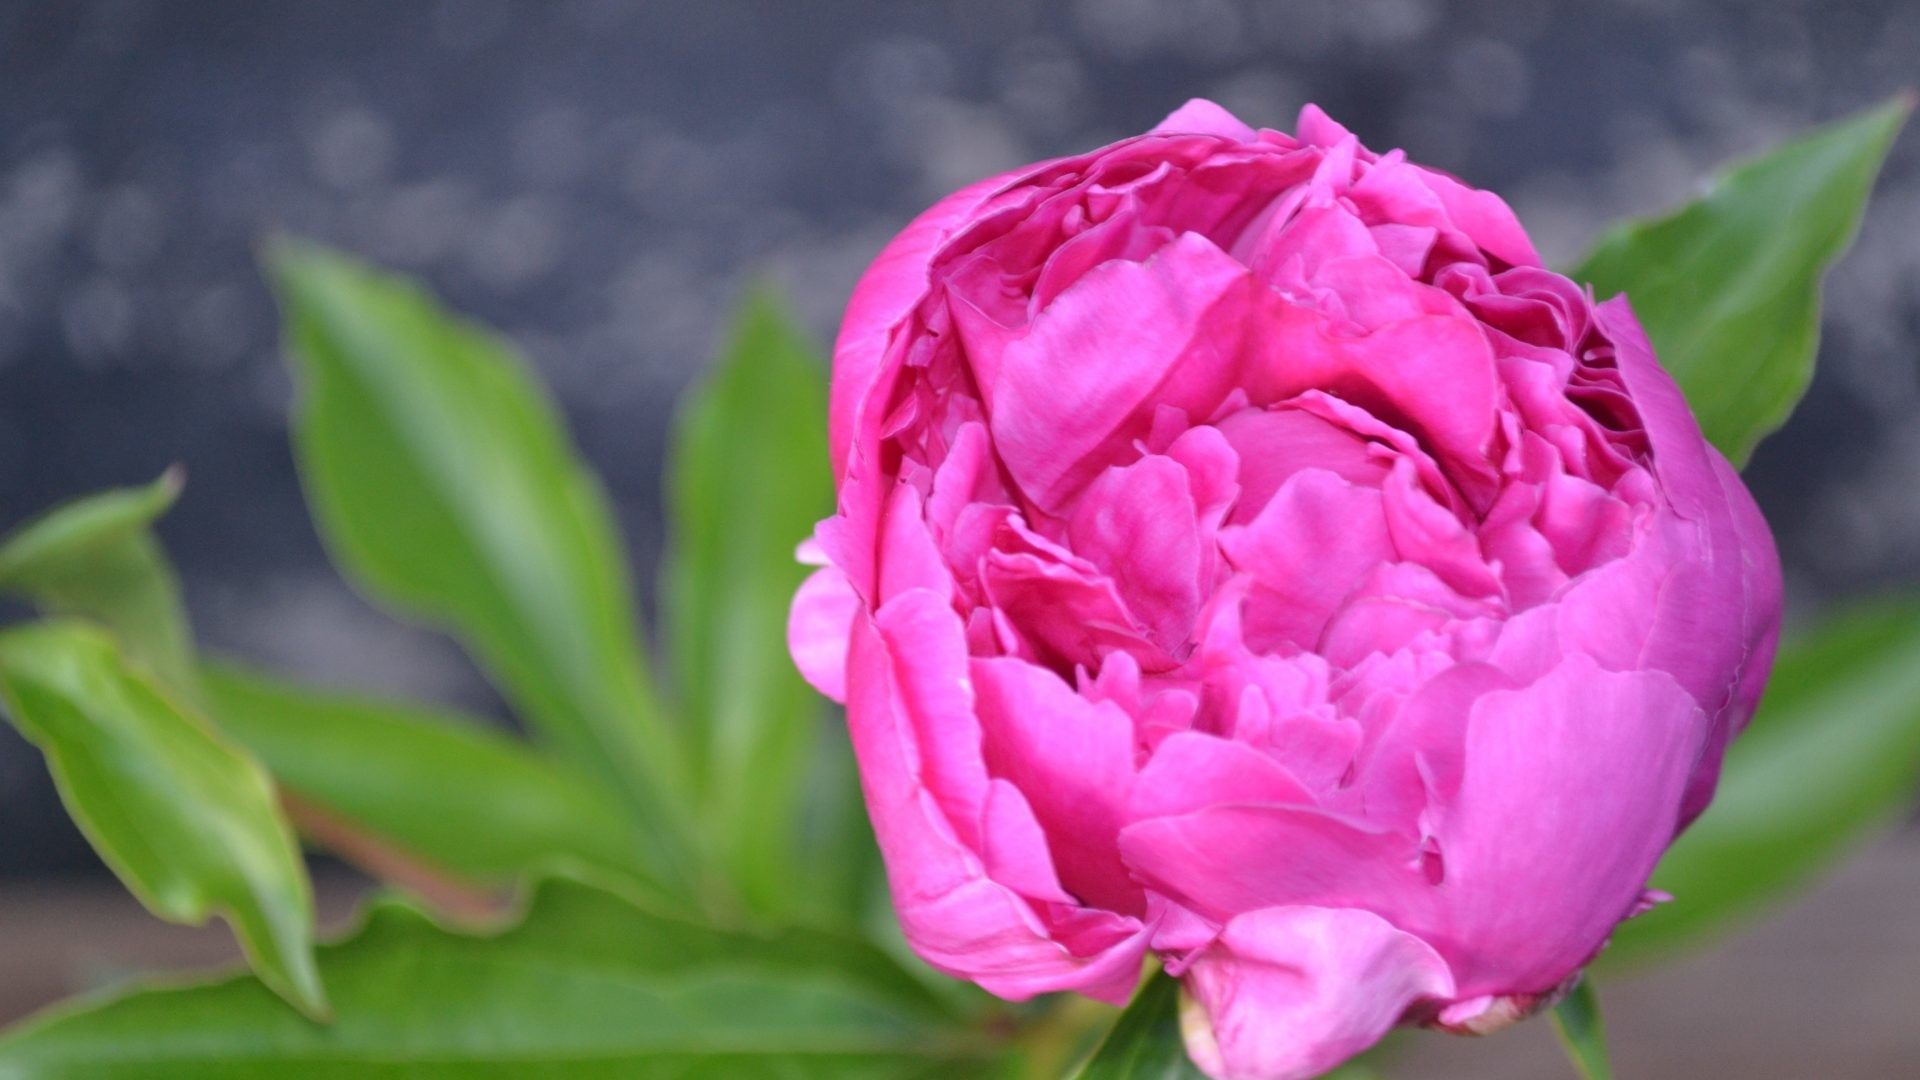 1920x1080 Peony Tag - Garden Pink Bright Flowers Fresh Green Queen Beautiful  Innocence Peony Love Forever Wonderful